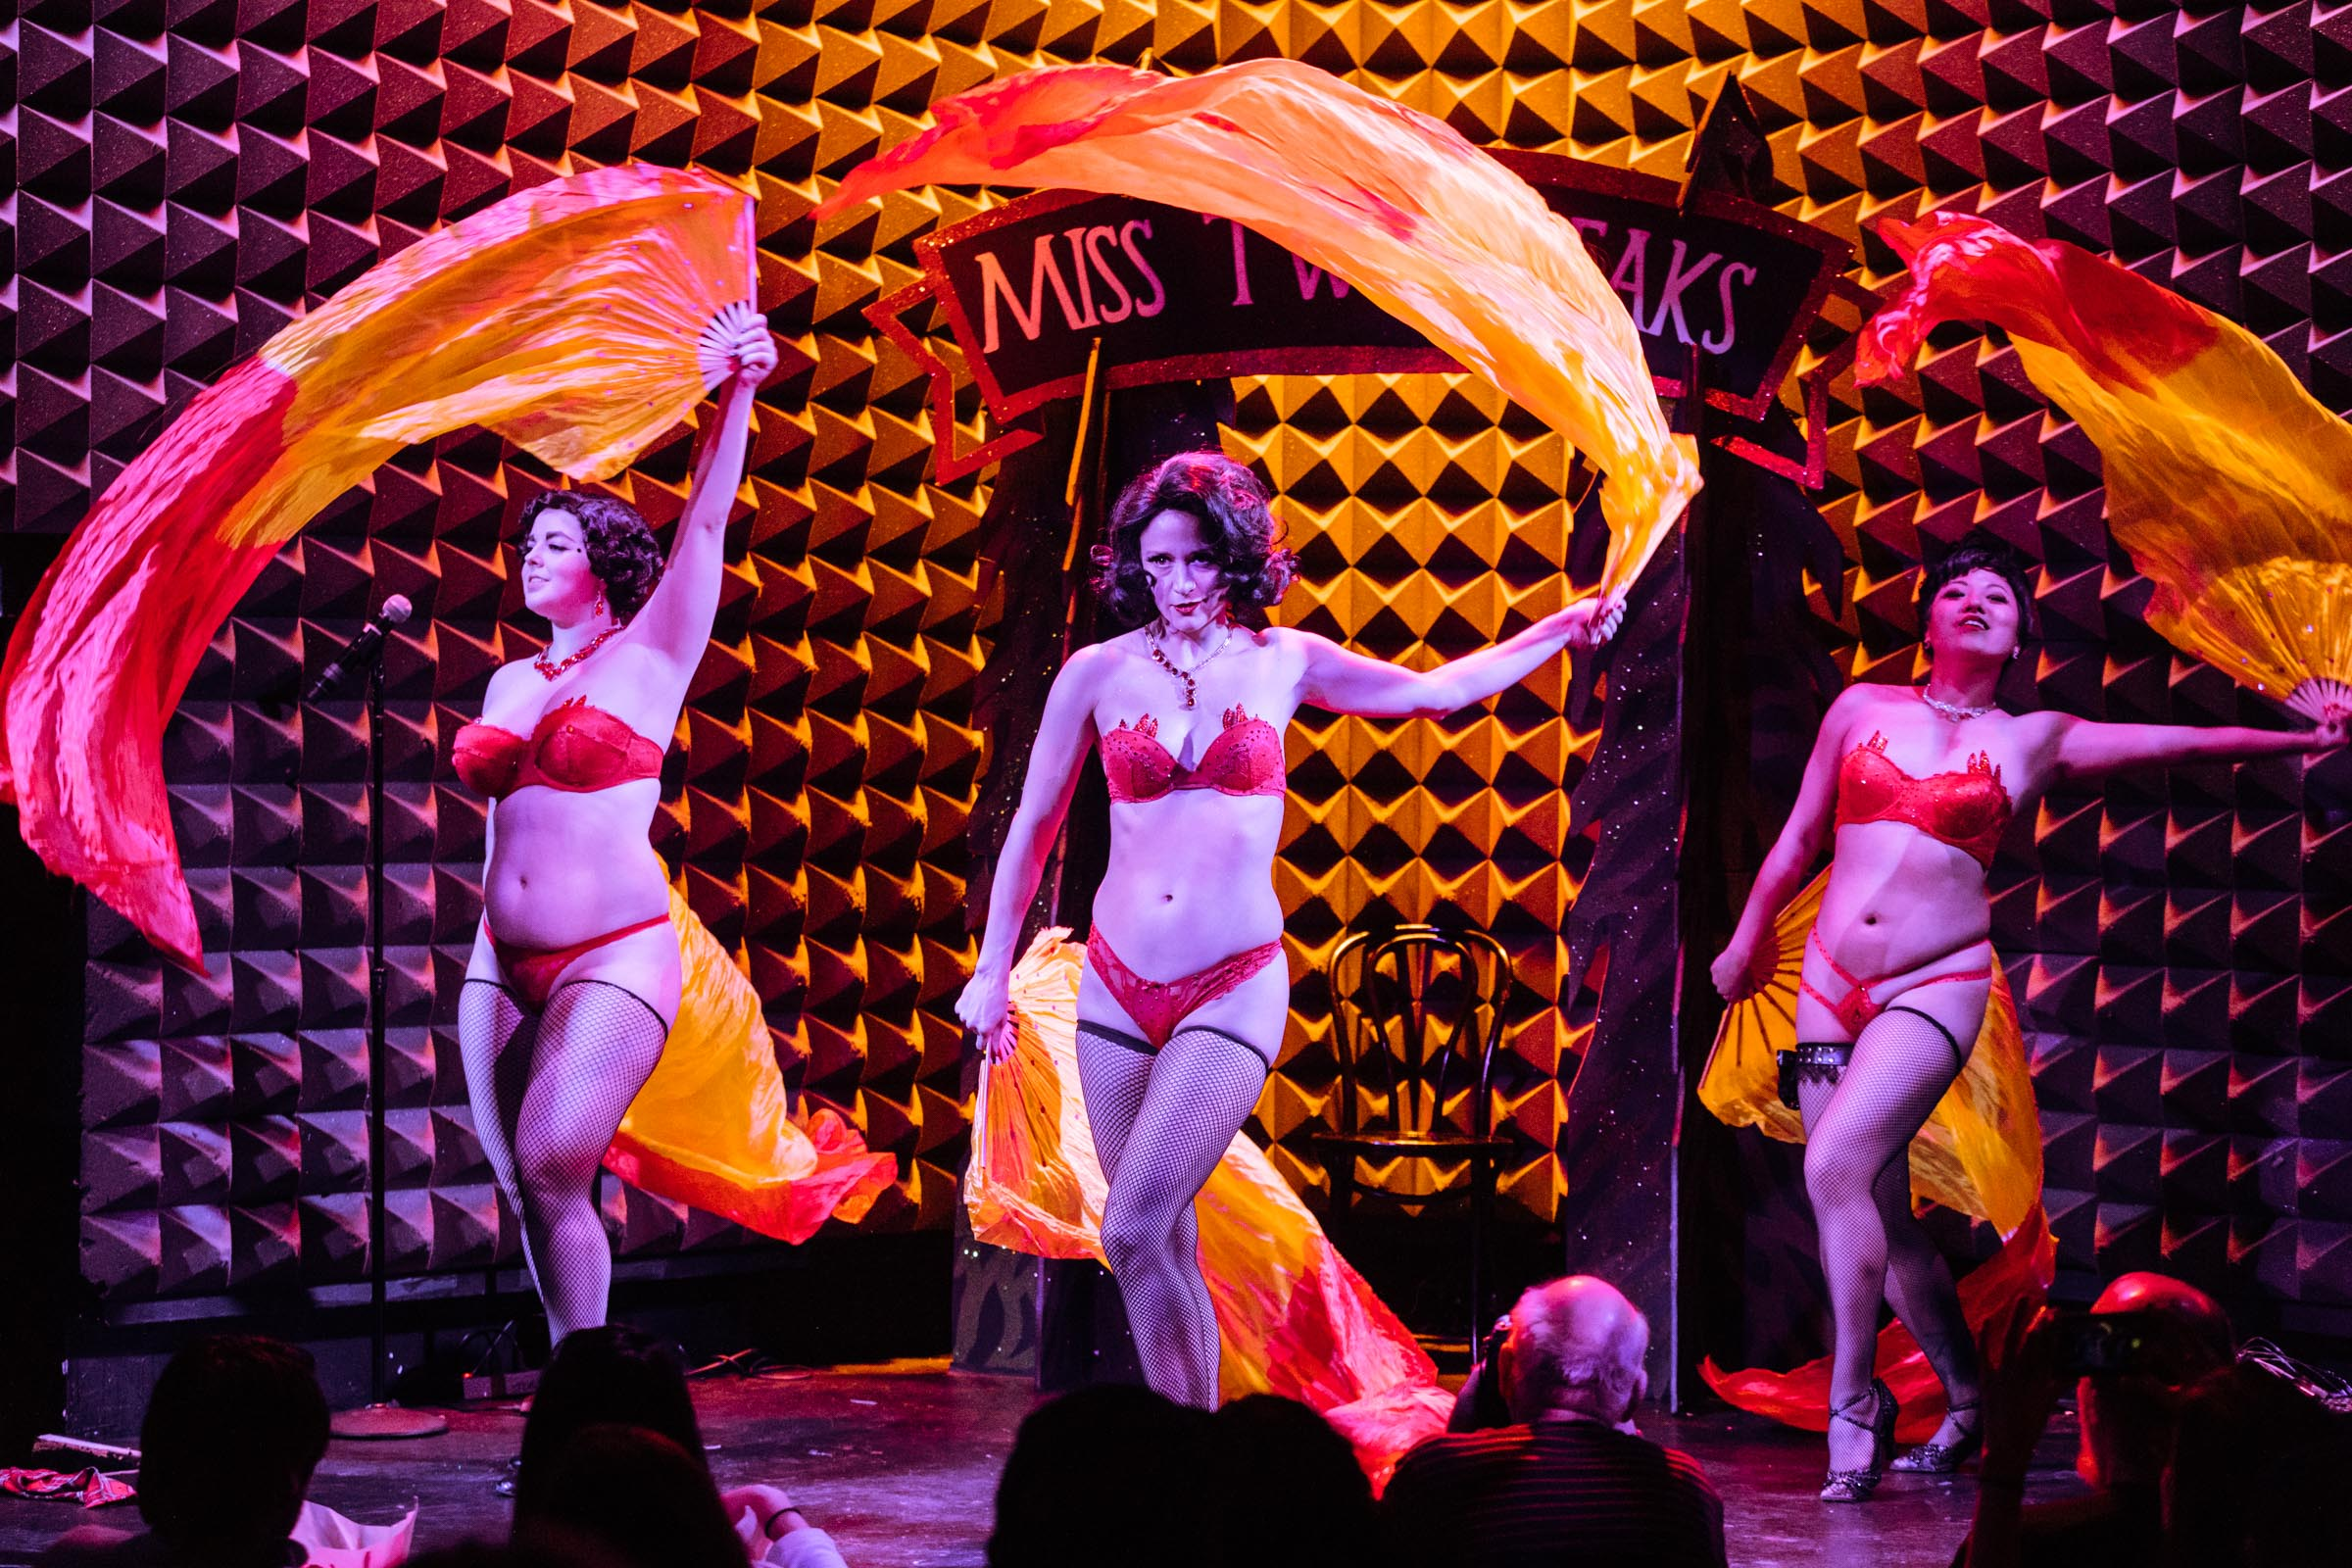 The Pink Room Dreams at the Miss Twin Peaks Pageant at Joe's Pub - Photo by Sachyn Mital